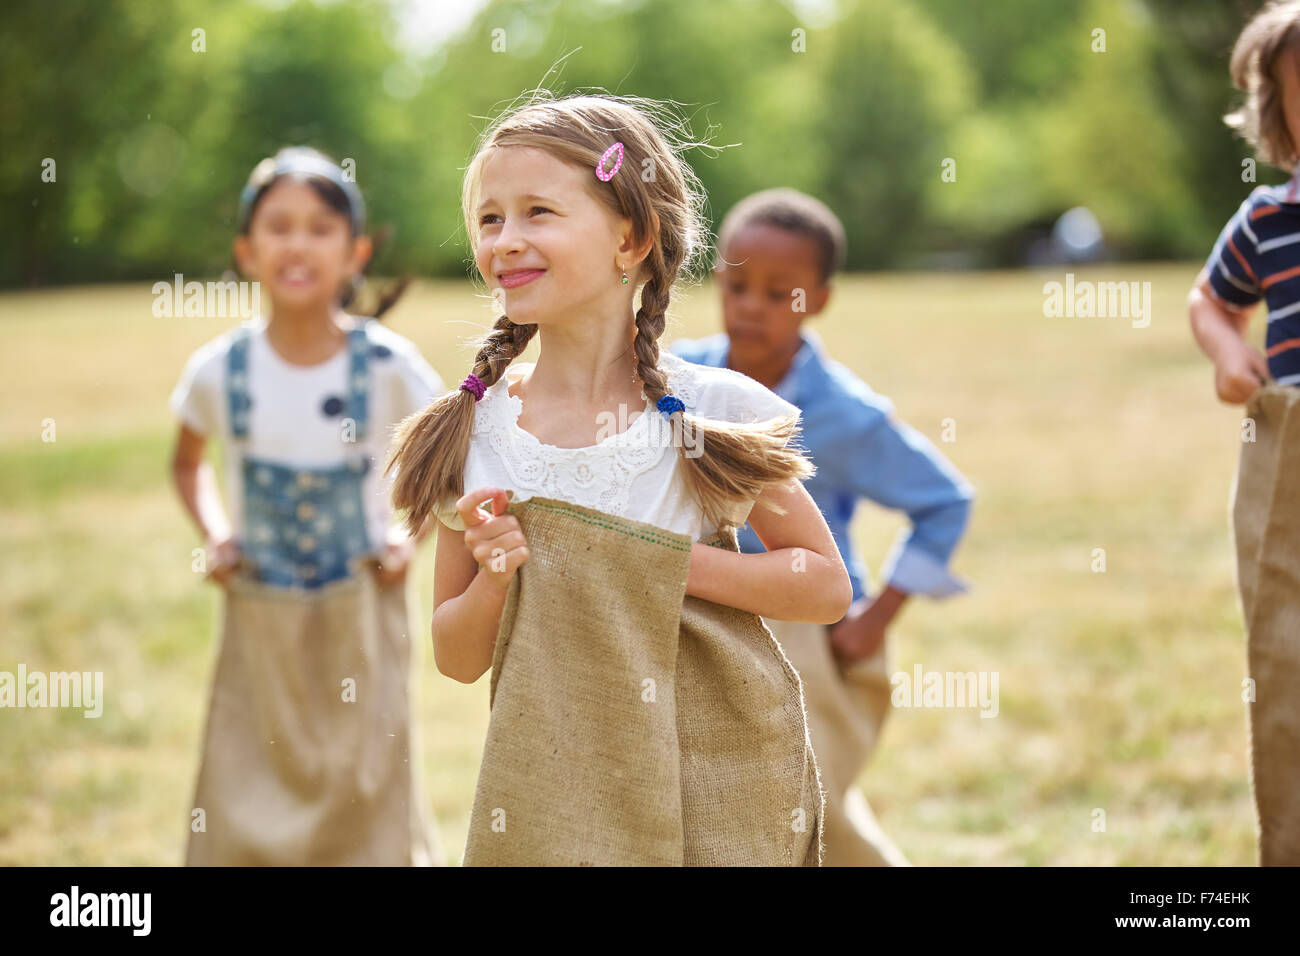 Girl with braided hair at sack race at the park - Stock Image